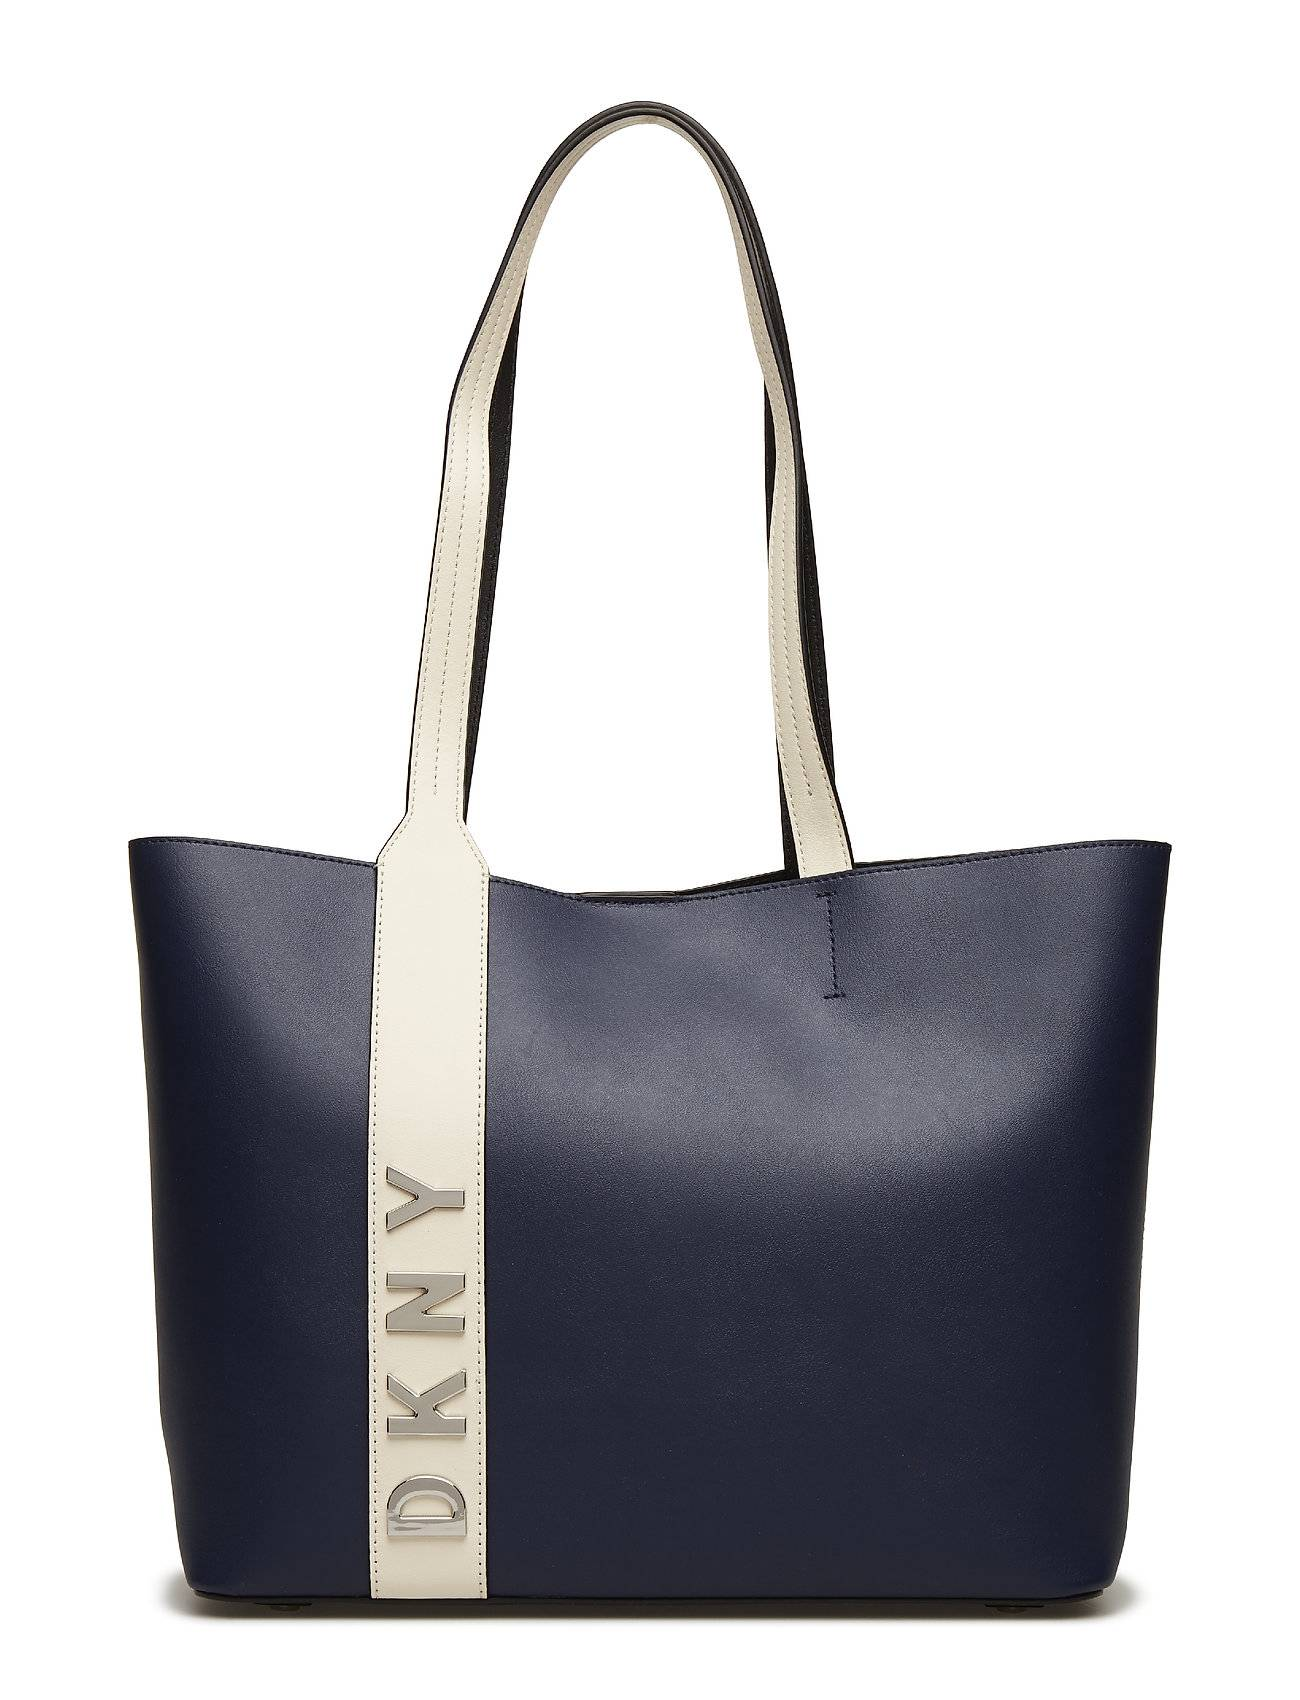 DKNY Bags Bedford- Lg Tote- Co